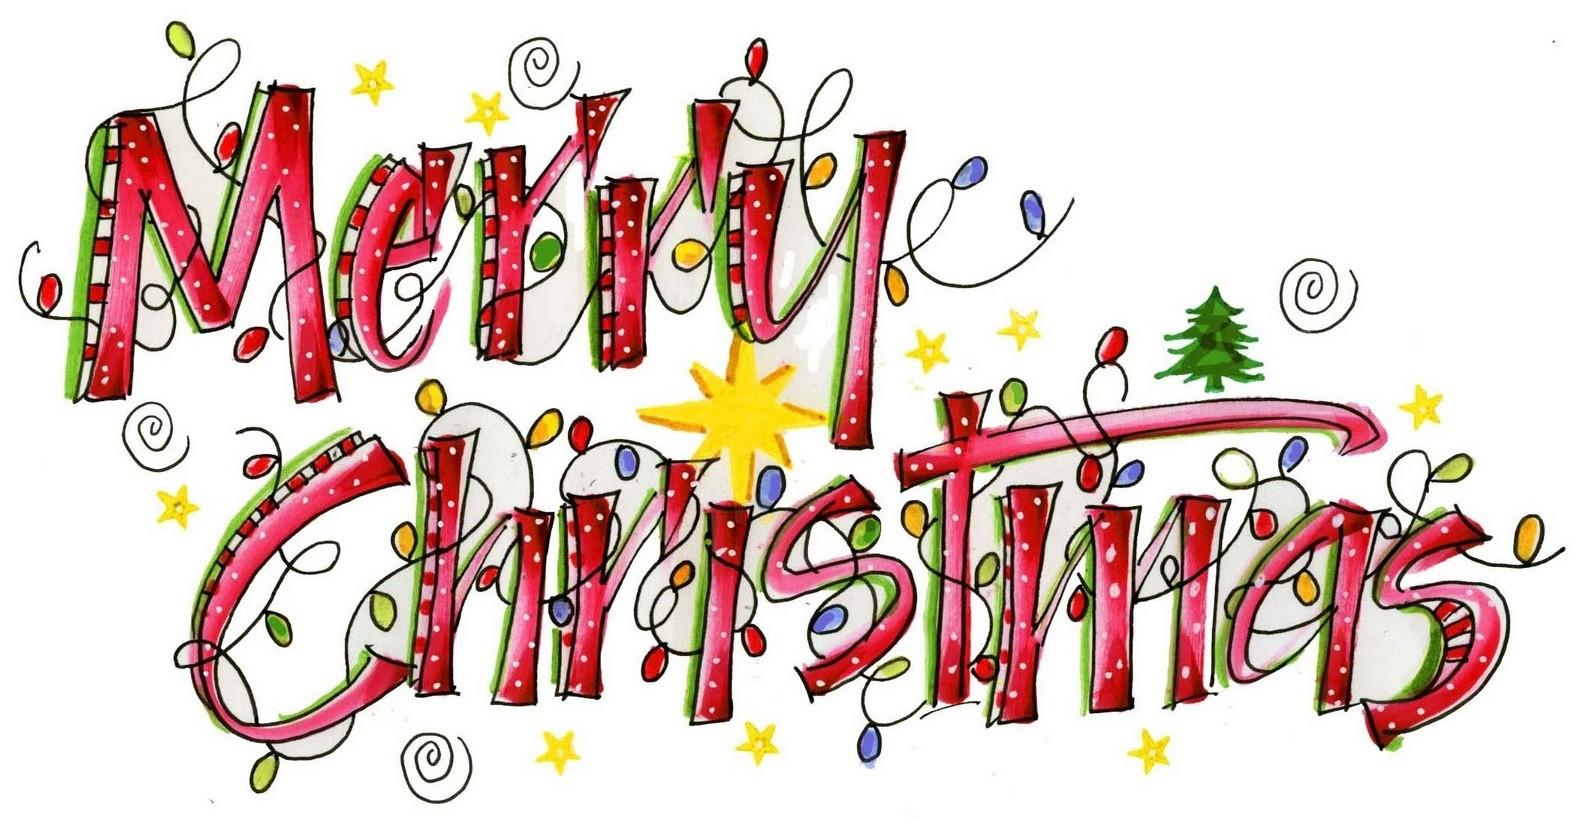 Greetingsforchristmas Best Christmas Wishes